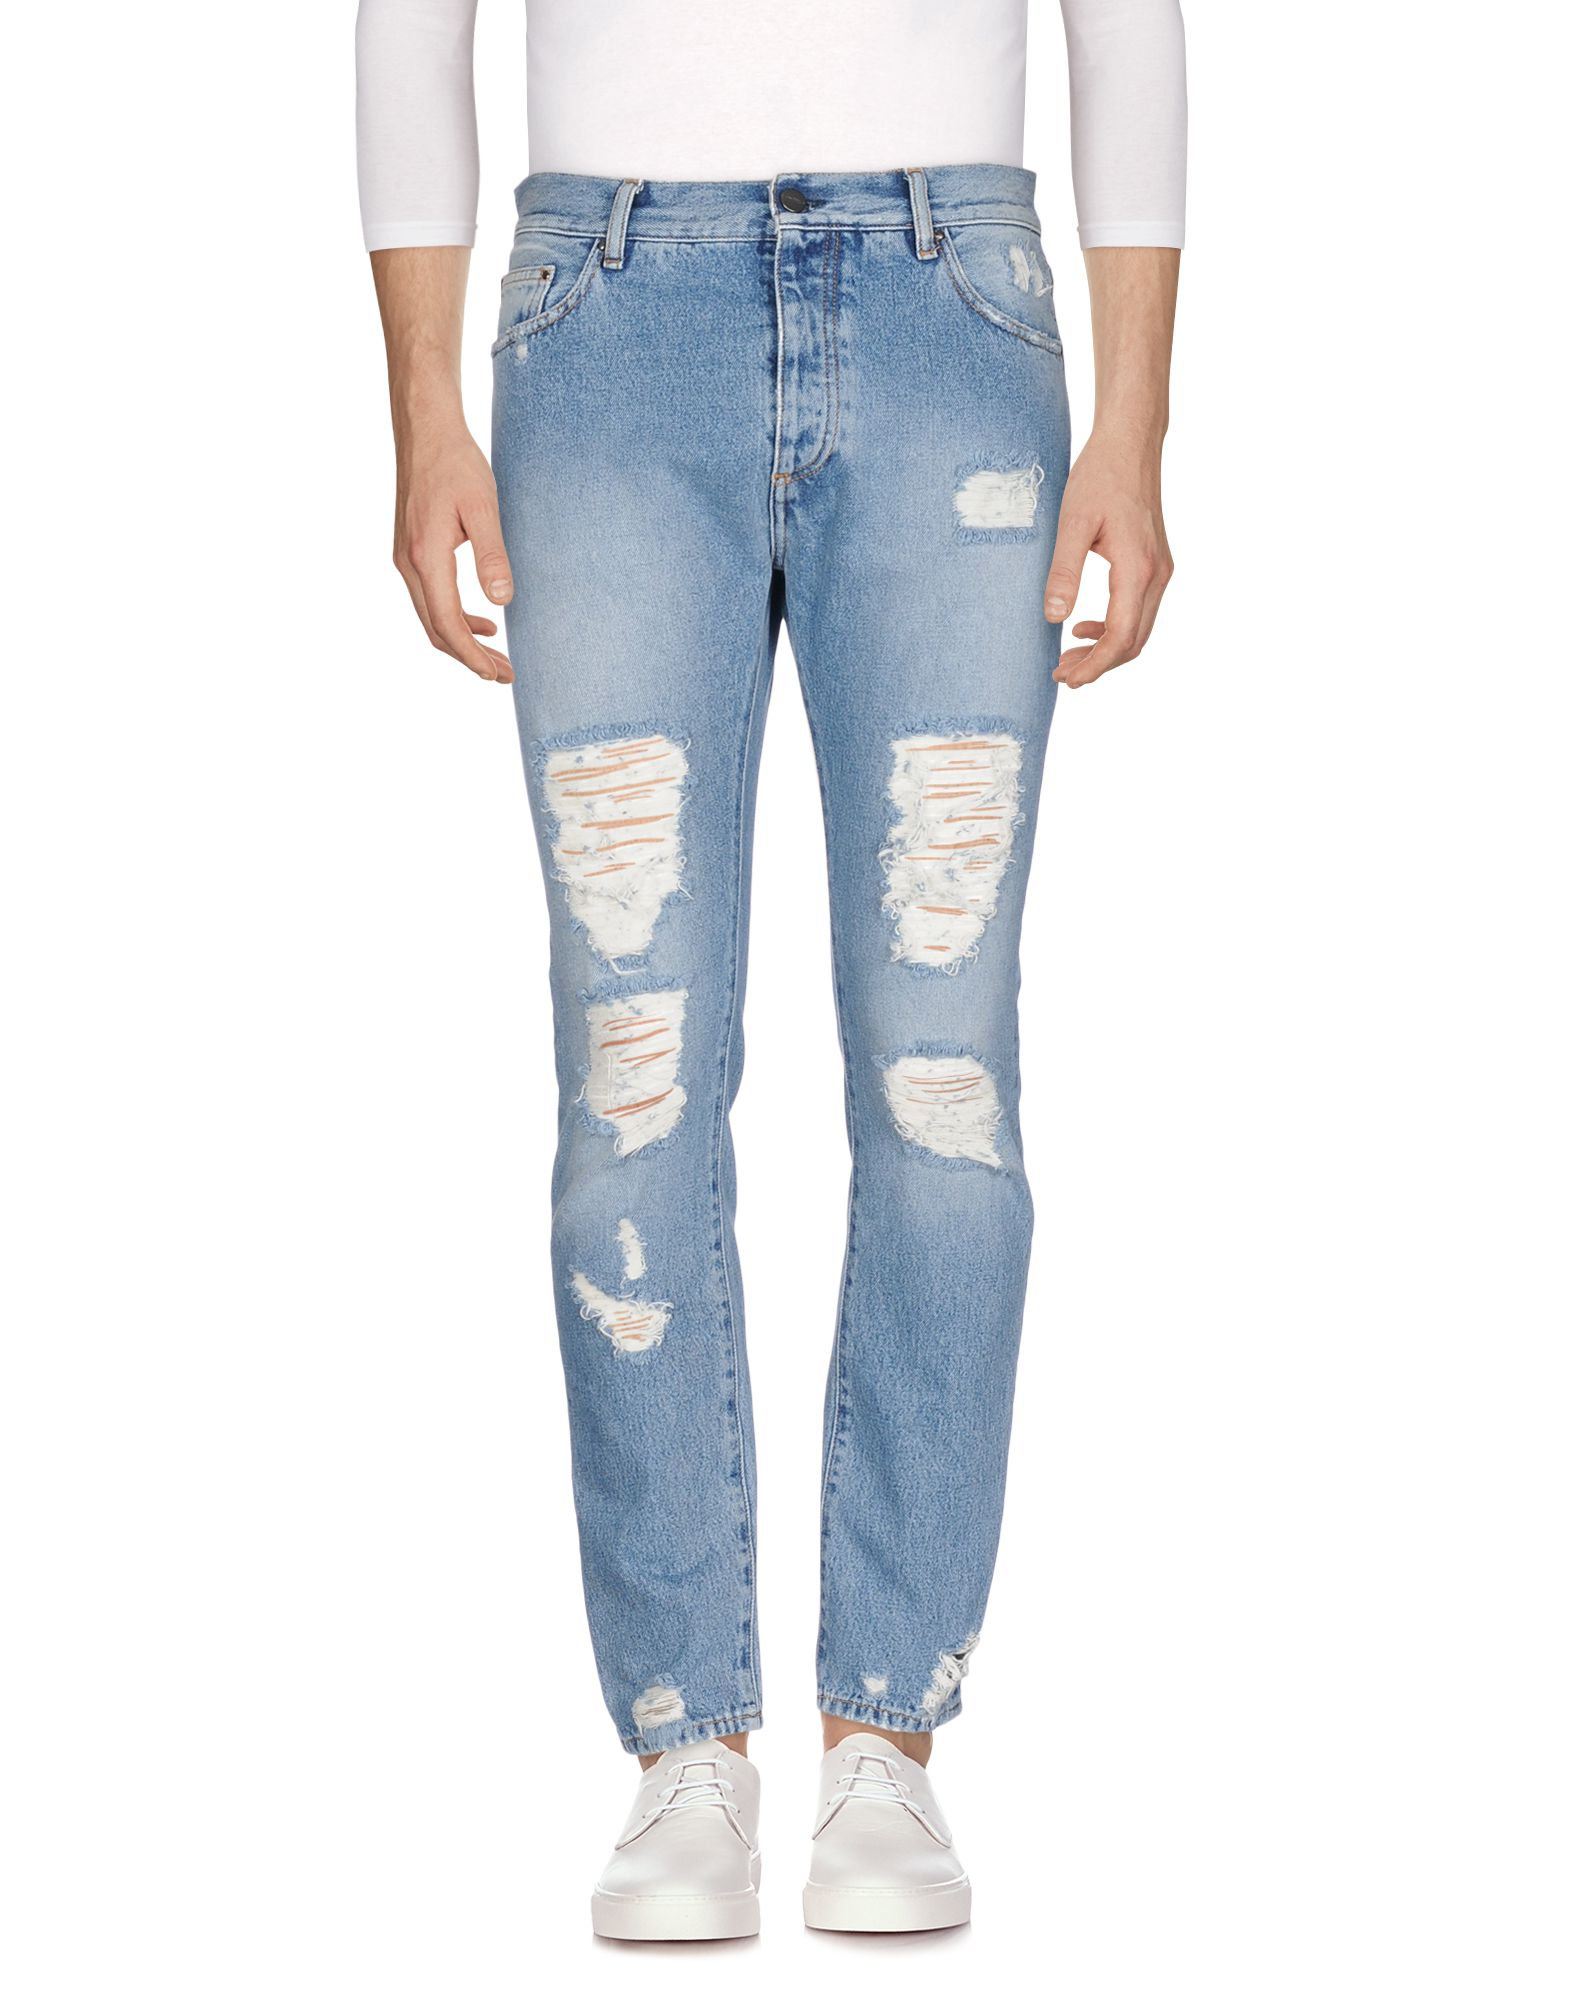 Pantaloni Jeans Palm Angels Uomo - Acquista online su